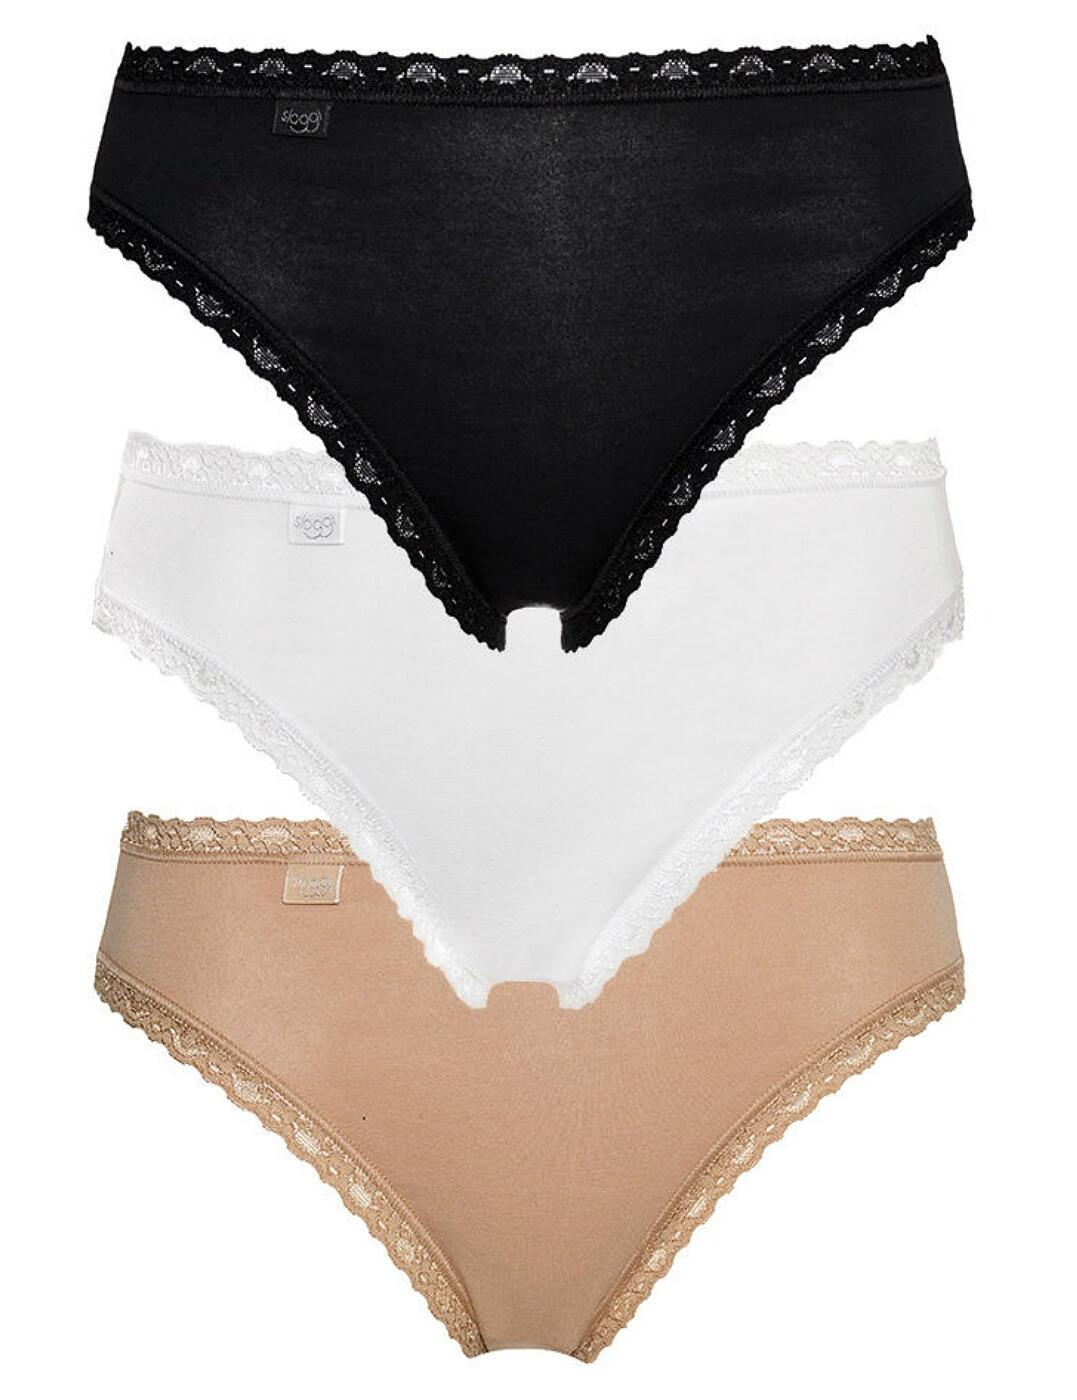 Sloggi Touch It Cotton H Hipster Brief 10146288 2 Pack Knickers 2 Pack